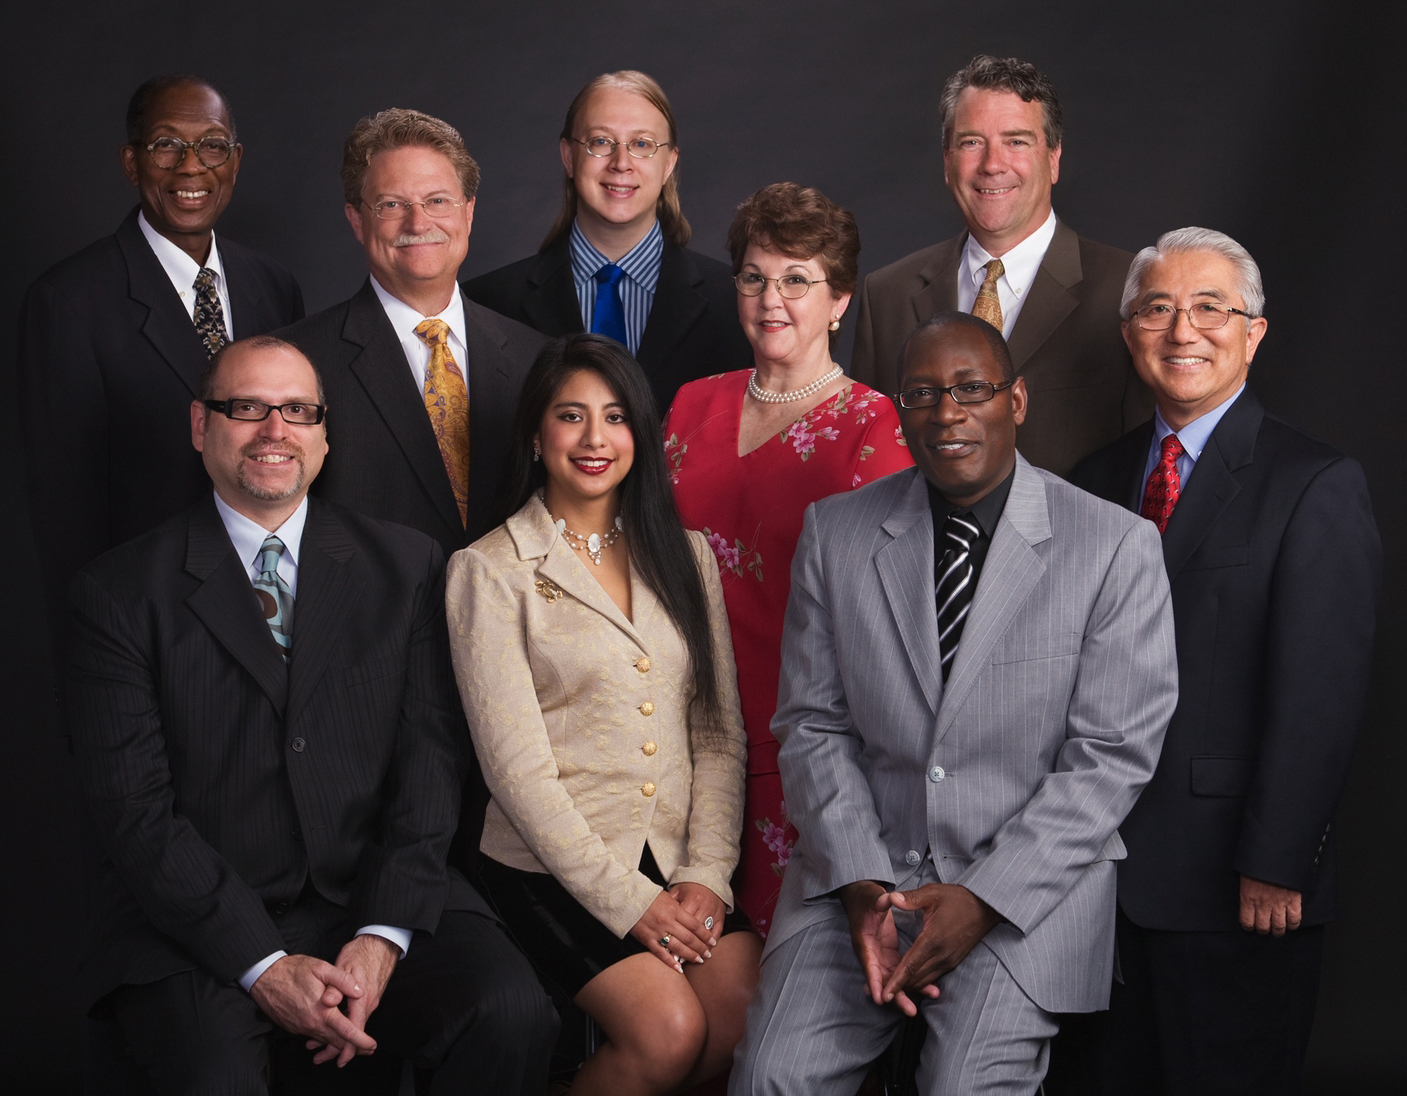 The Memnosyne Team (top row, L to R): Board Member/Education Director - Phillip Collins; Co-Founder/Executive Vice-President - Joshua Raymond Frenk; Director of Programs - Rev./Dr. Todd Collier; (2nd Row L to R): Executive Director - Coke Buchanan; Treasurer - Constance Hargis CPA; Director of Memnosyne Campus - Phillip Shinoda; Vice-President of Events - Alan Keith; Co-Founder/President - Mary Ann Thompson-Frenk; Asisstant to The Directors - Anthony Chisom